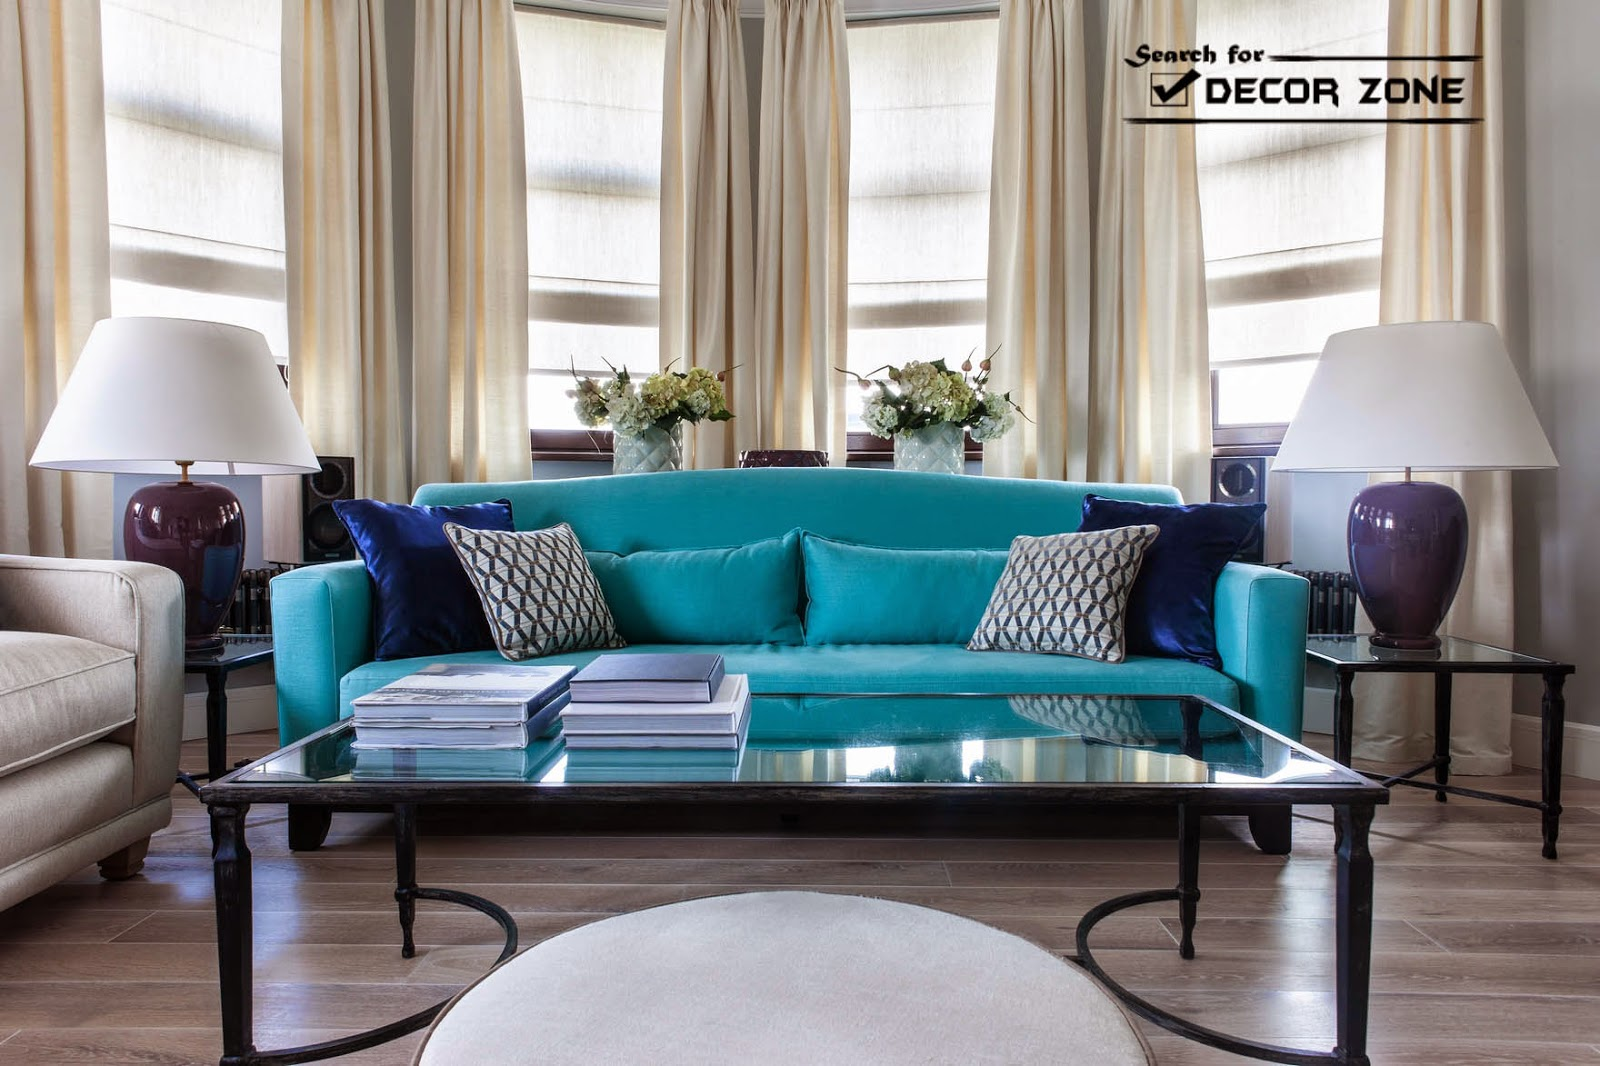 Living Room Living Room Furniture Contemporary contemporary living room furniture sets designs and ideas turquoise sofa white chairs